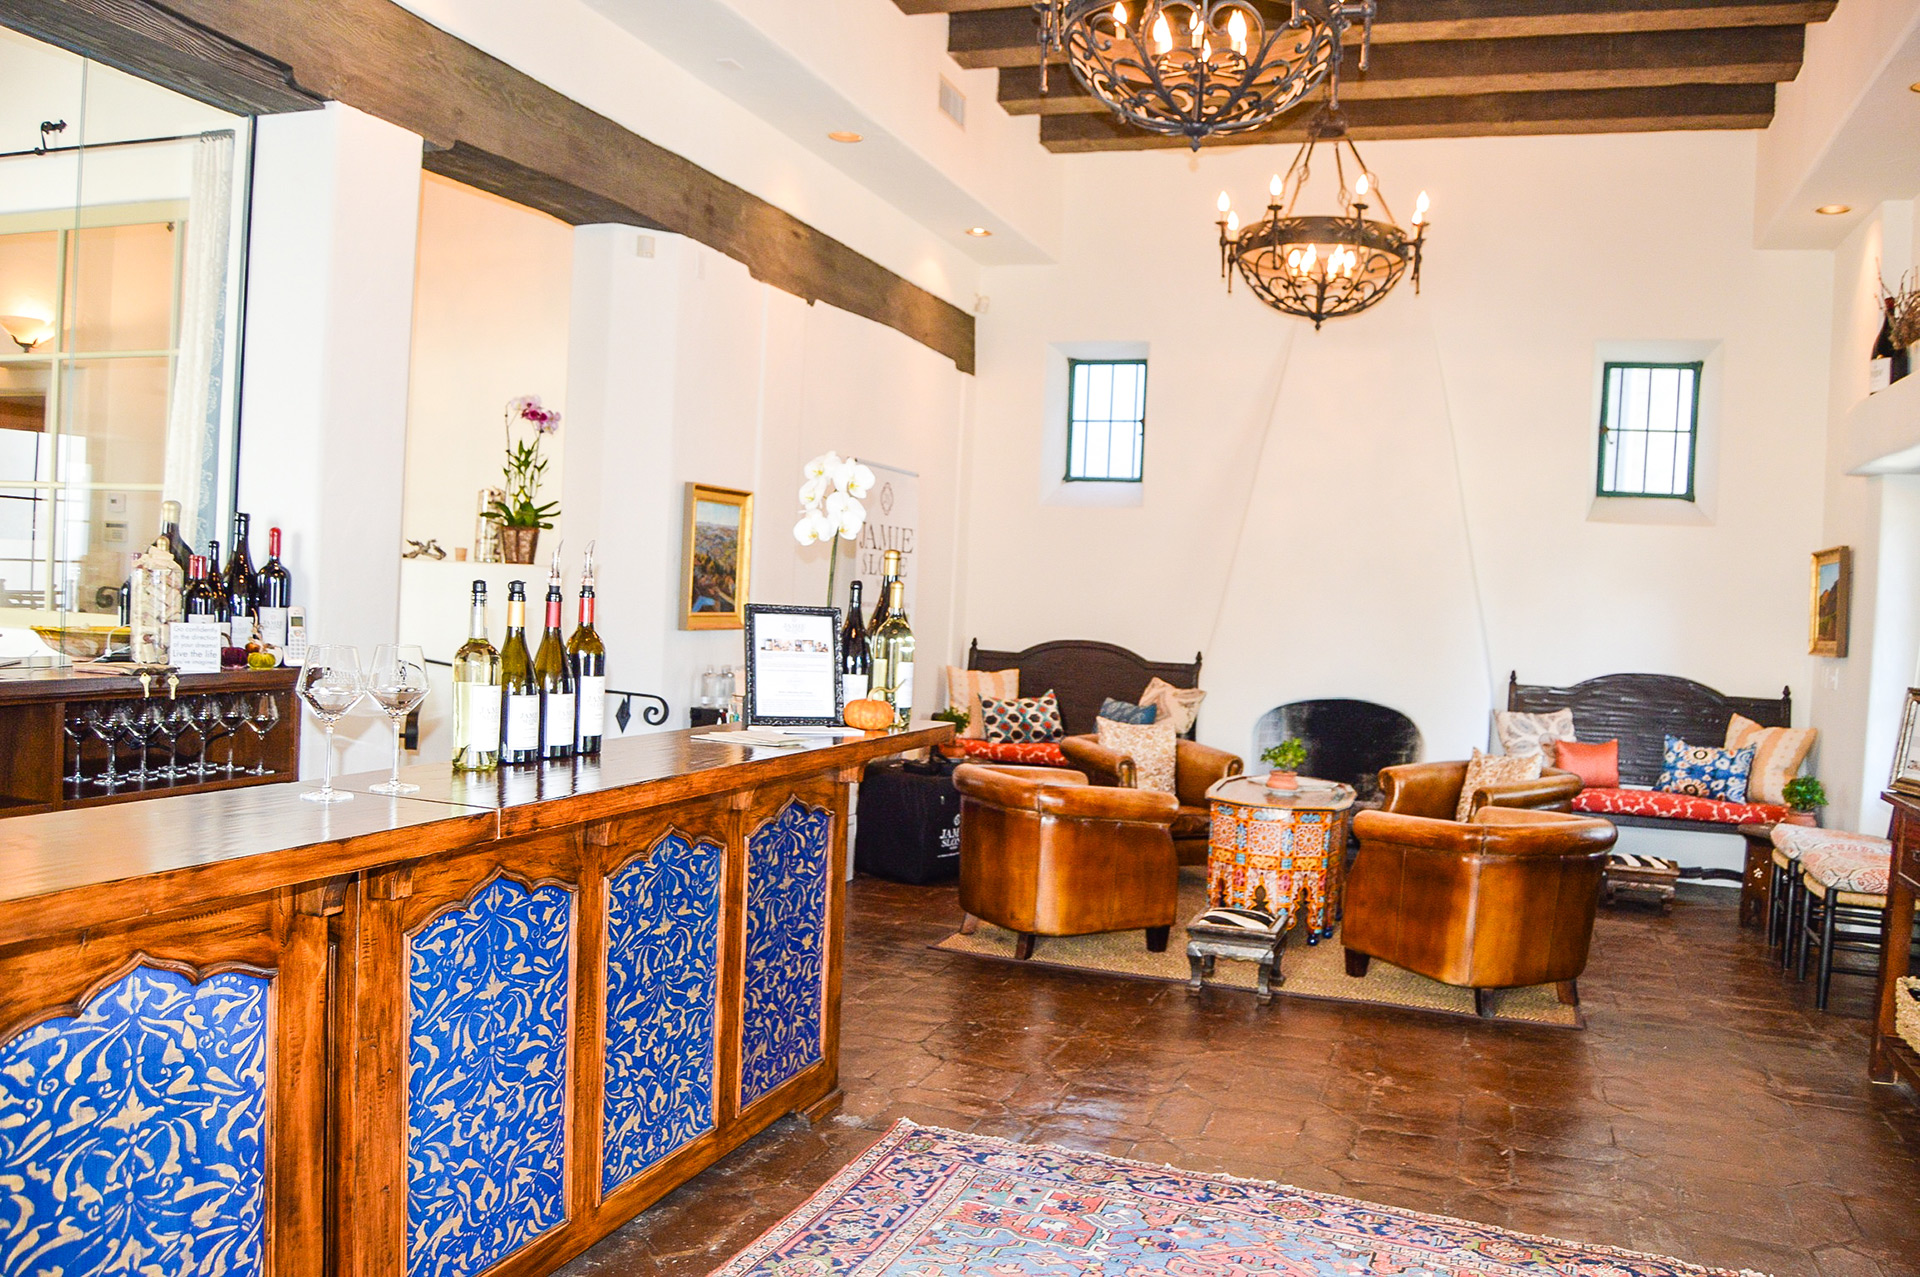 Downtown Santa Barbara Wine Tasting Room